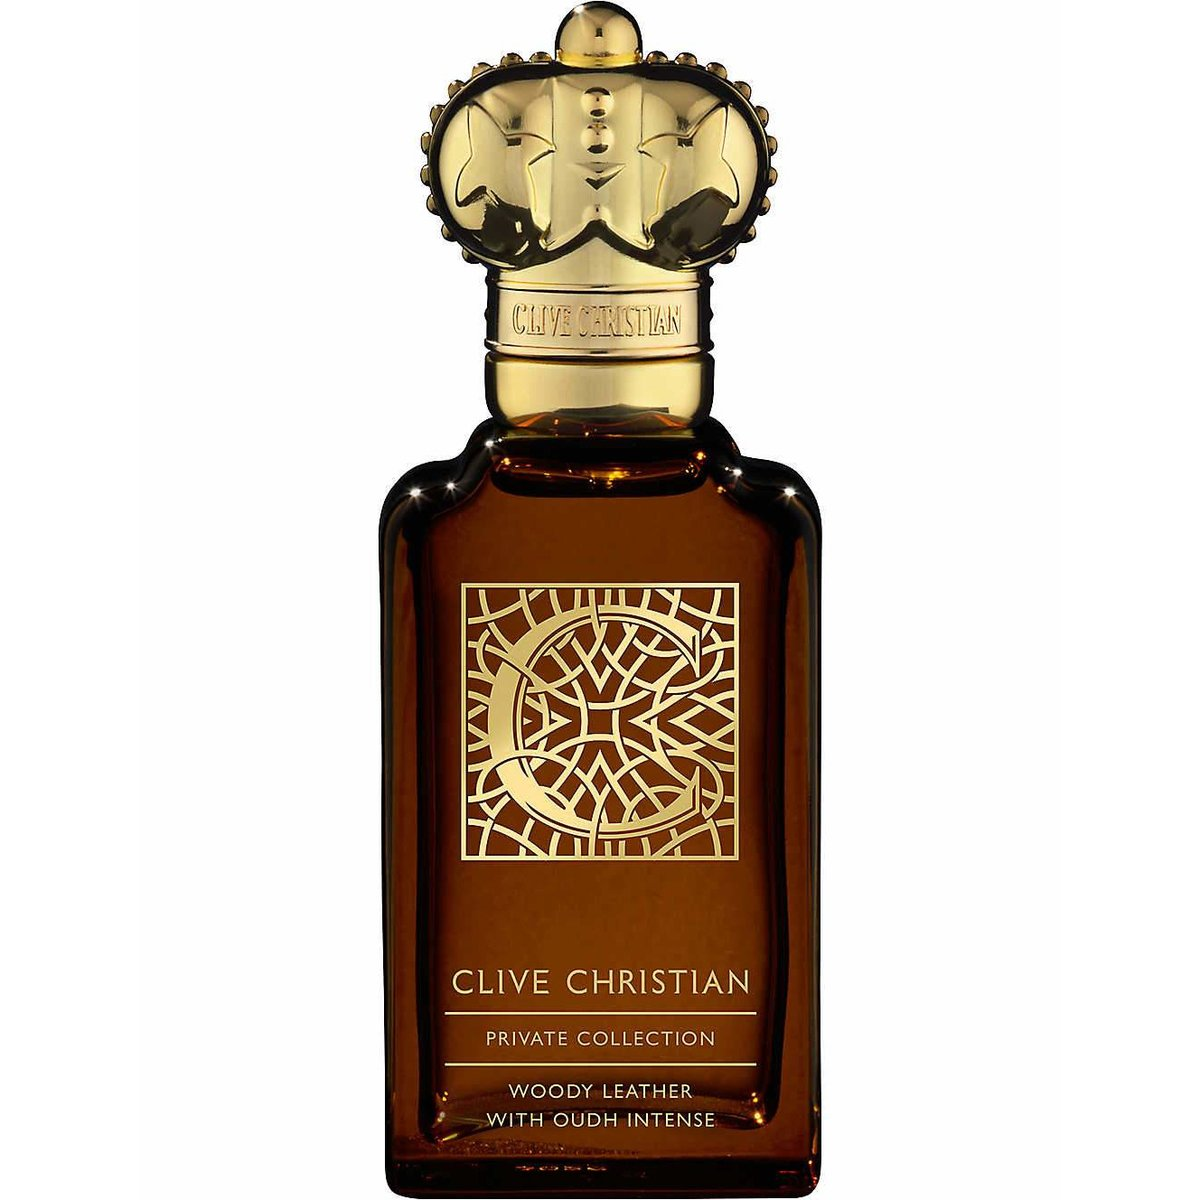 Clive Christian C Woody Leather 100ml